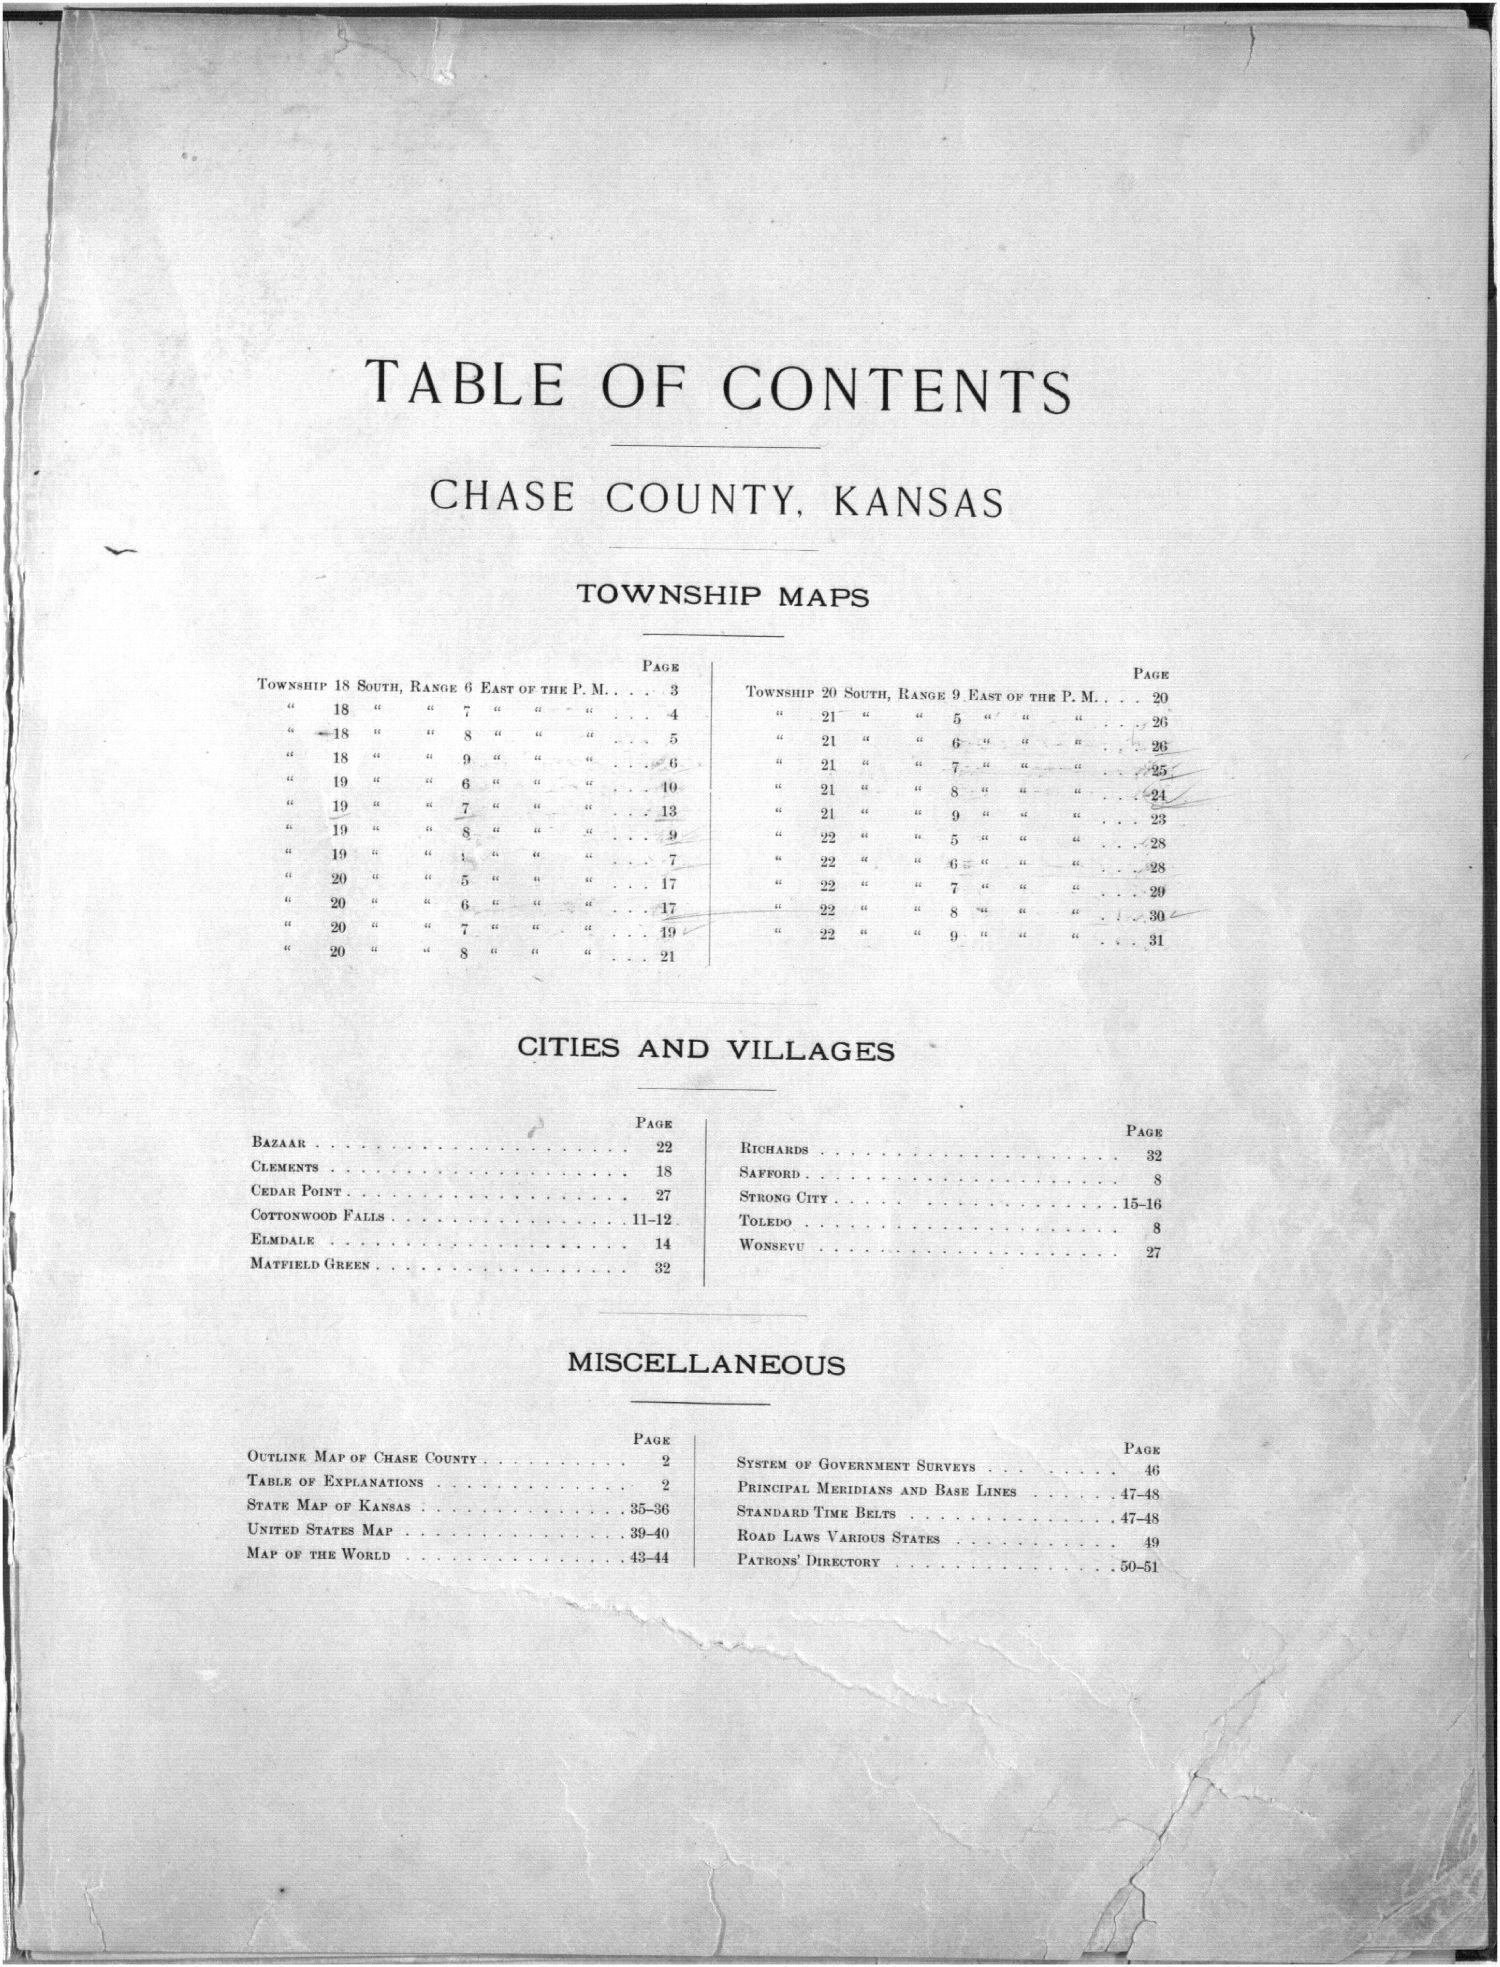 Plat book, Chase County, Kansas - Table of Contents